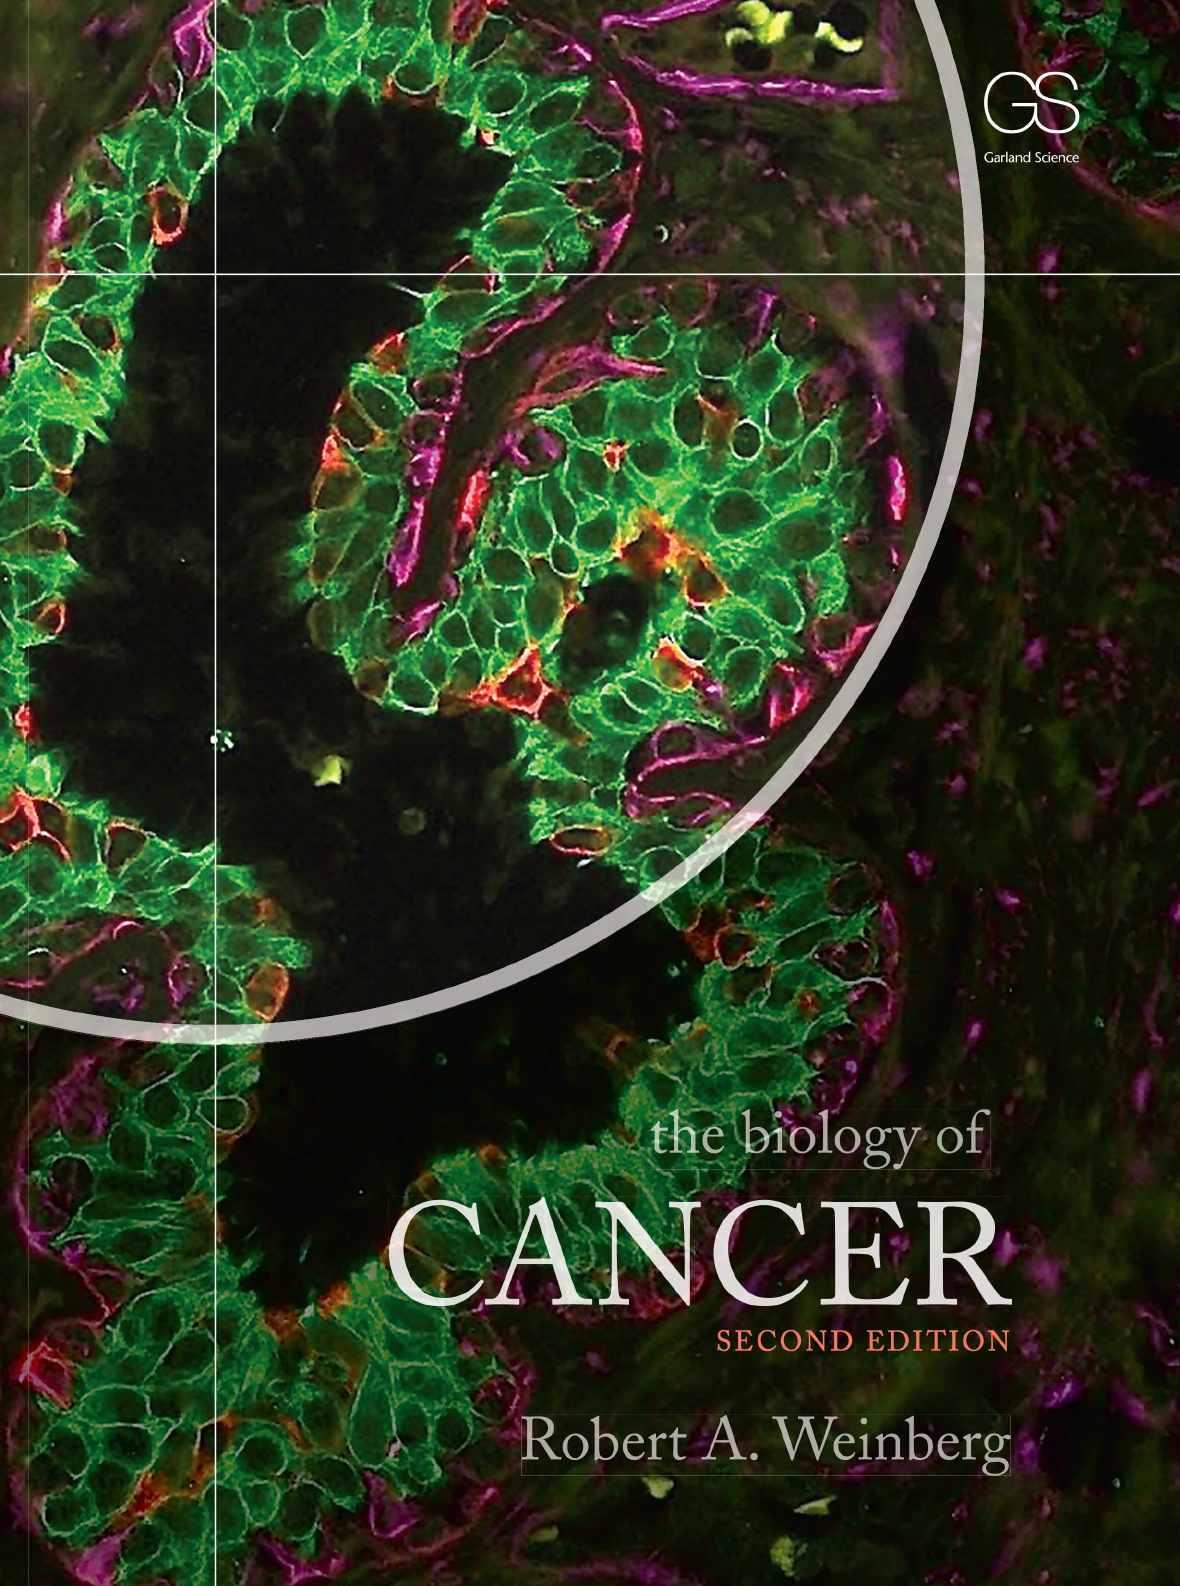 the biology of cancer weinberg 2013 pdf free download